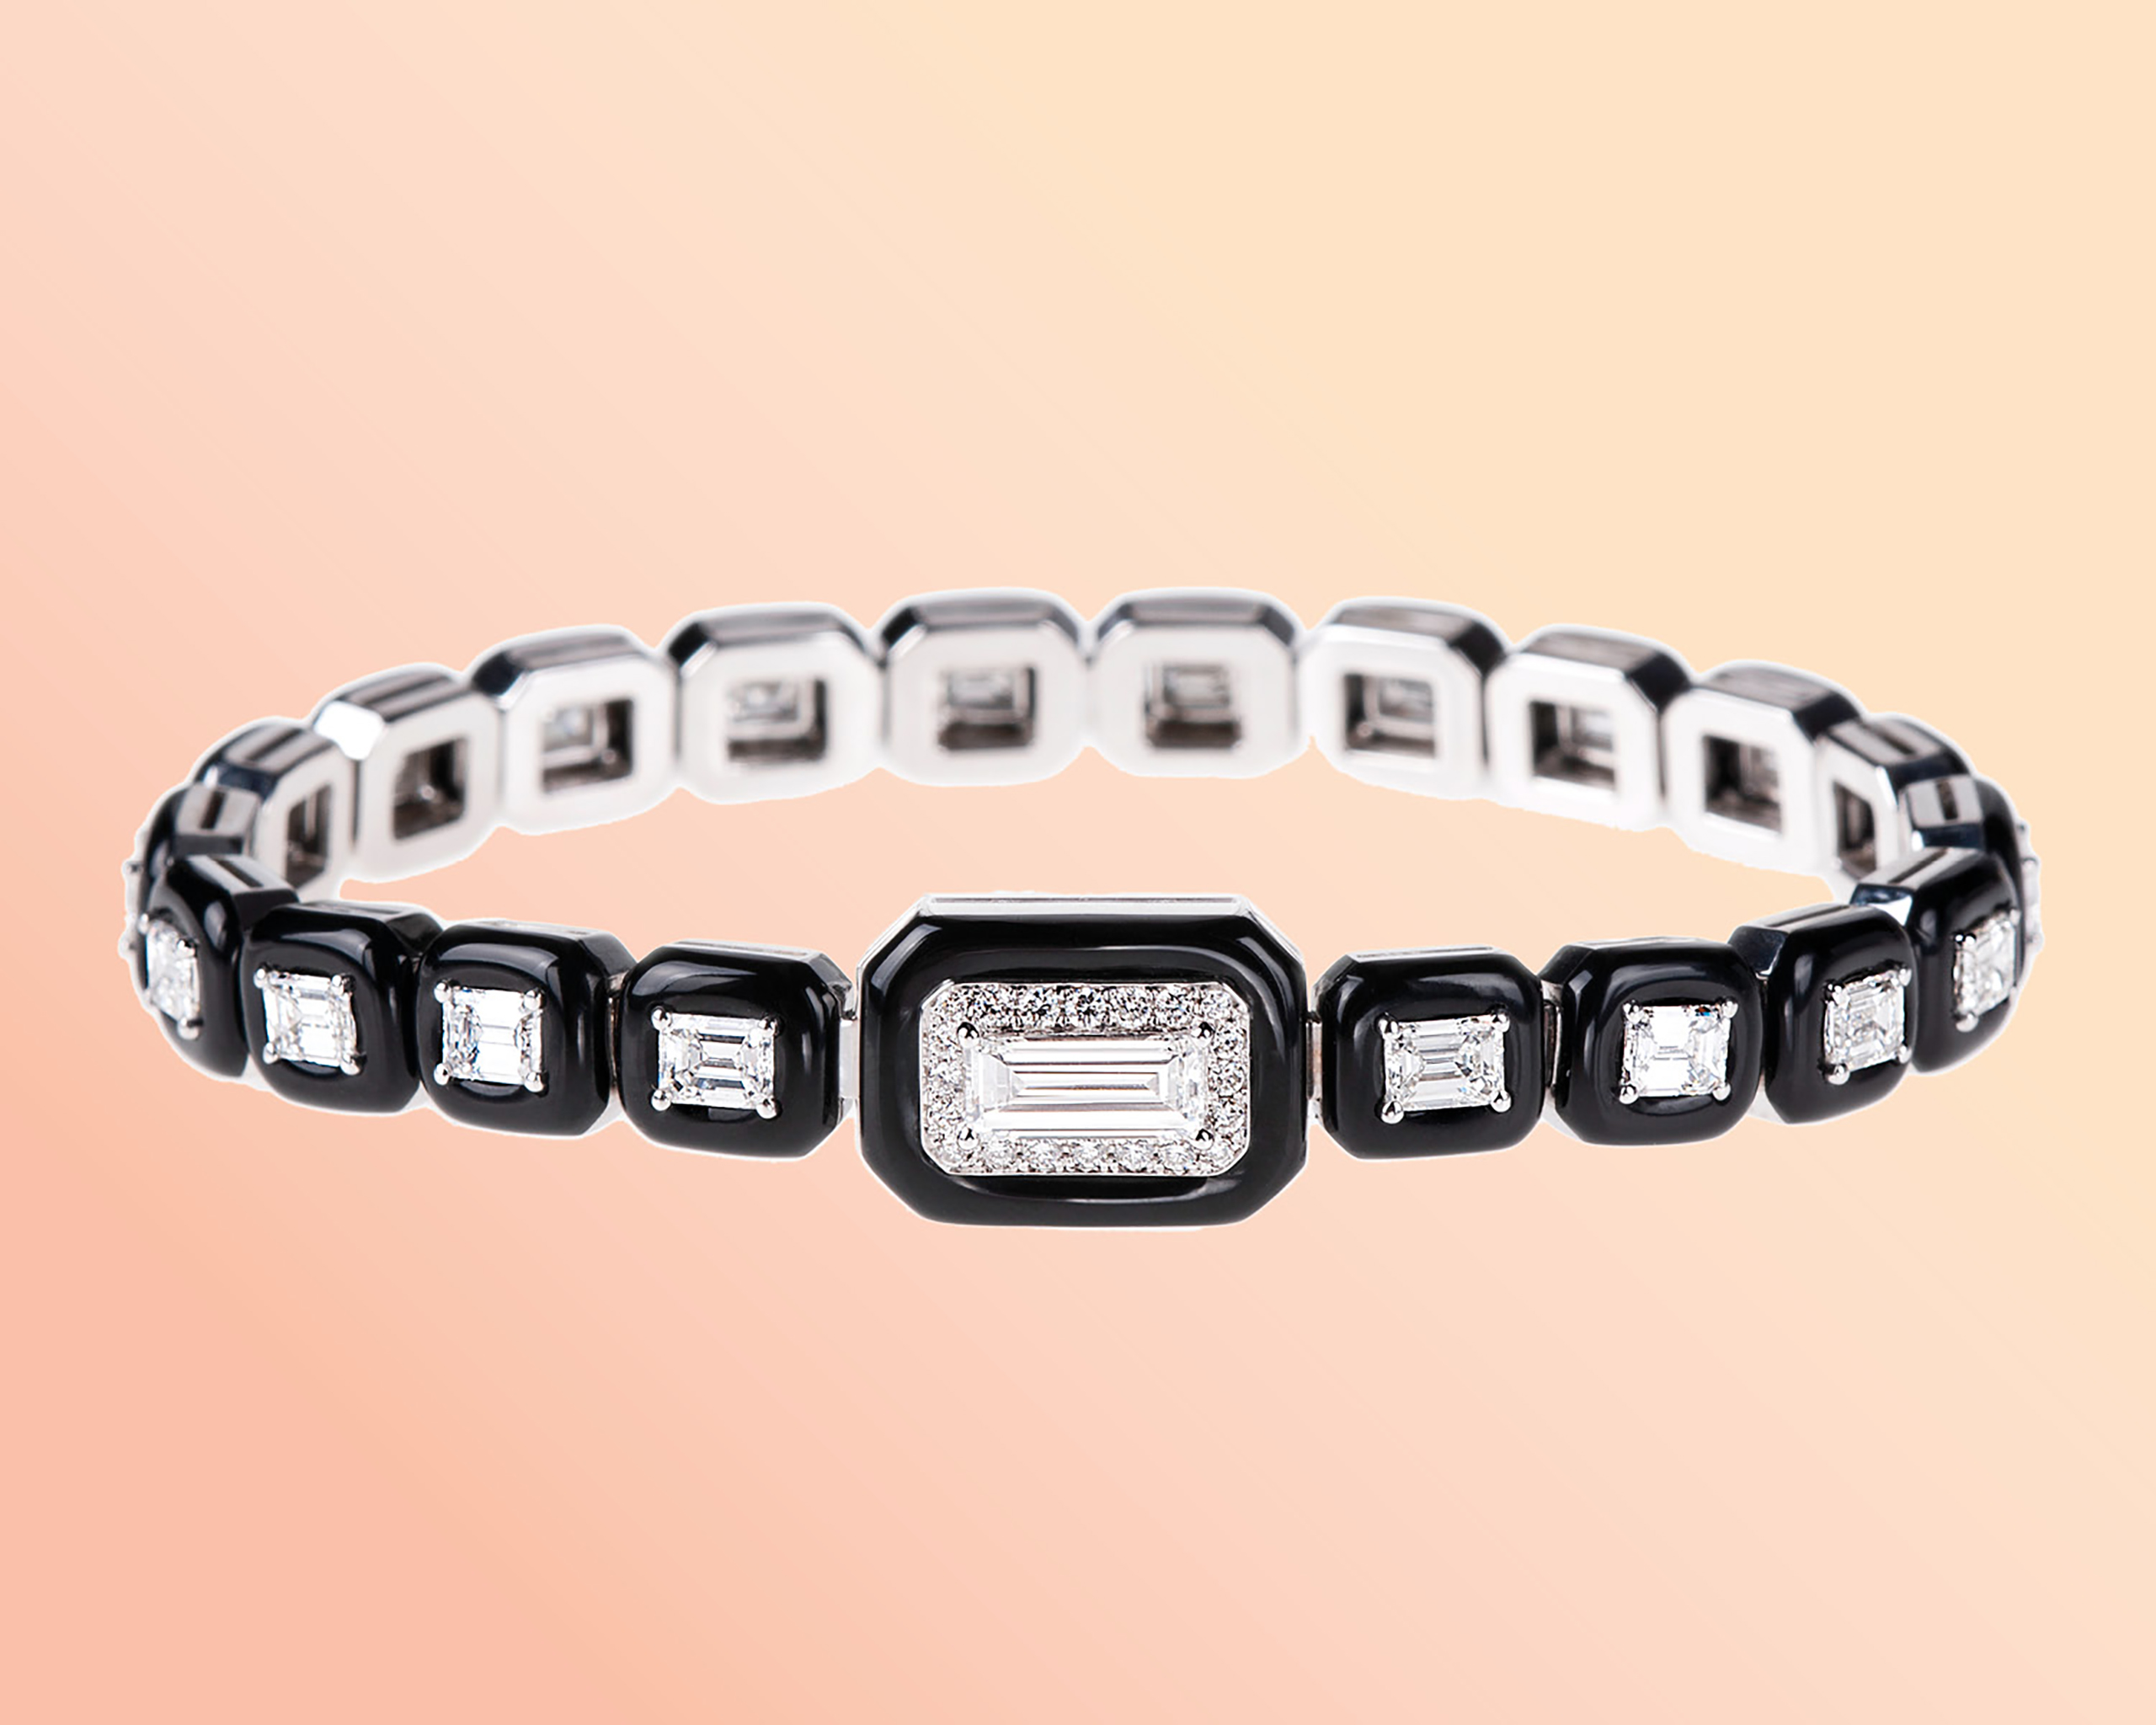 White gold tennis bracelet featuring emerald cut diamonds and black enamel outlines from Nikos Koulis Oui Collection